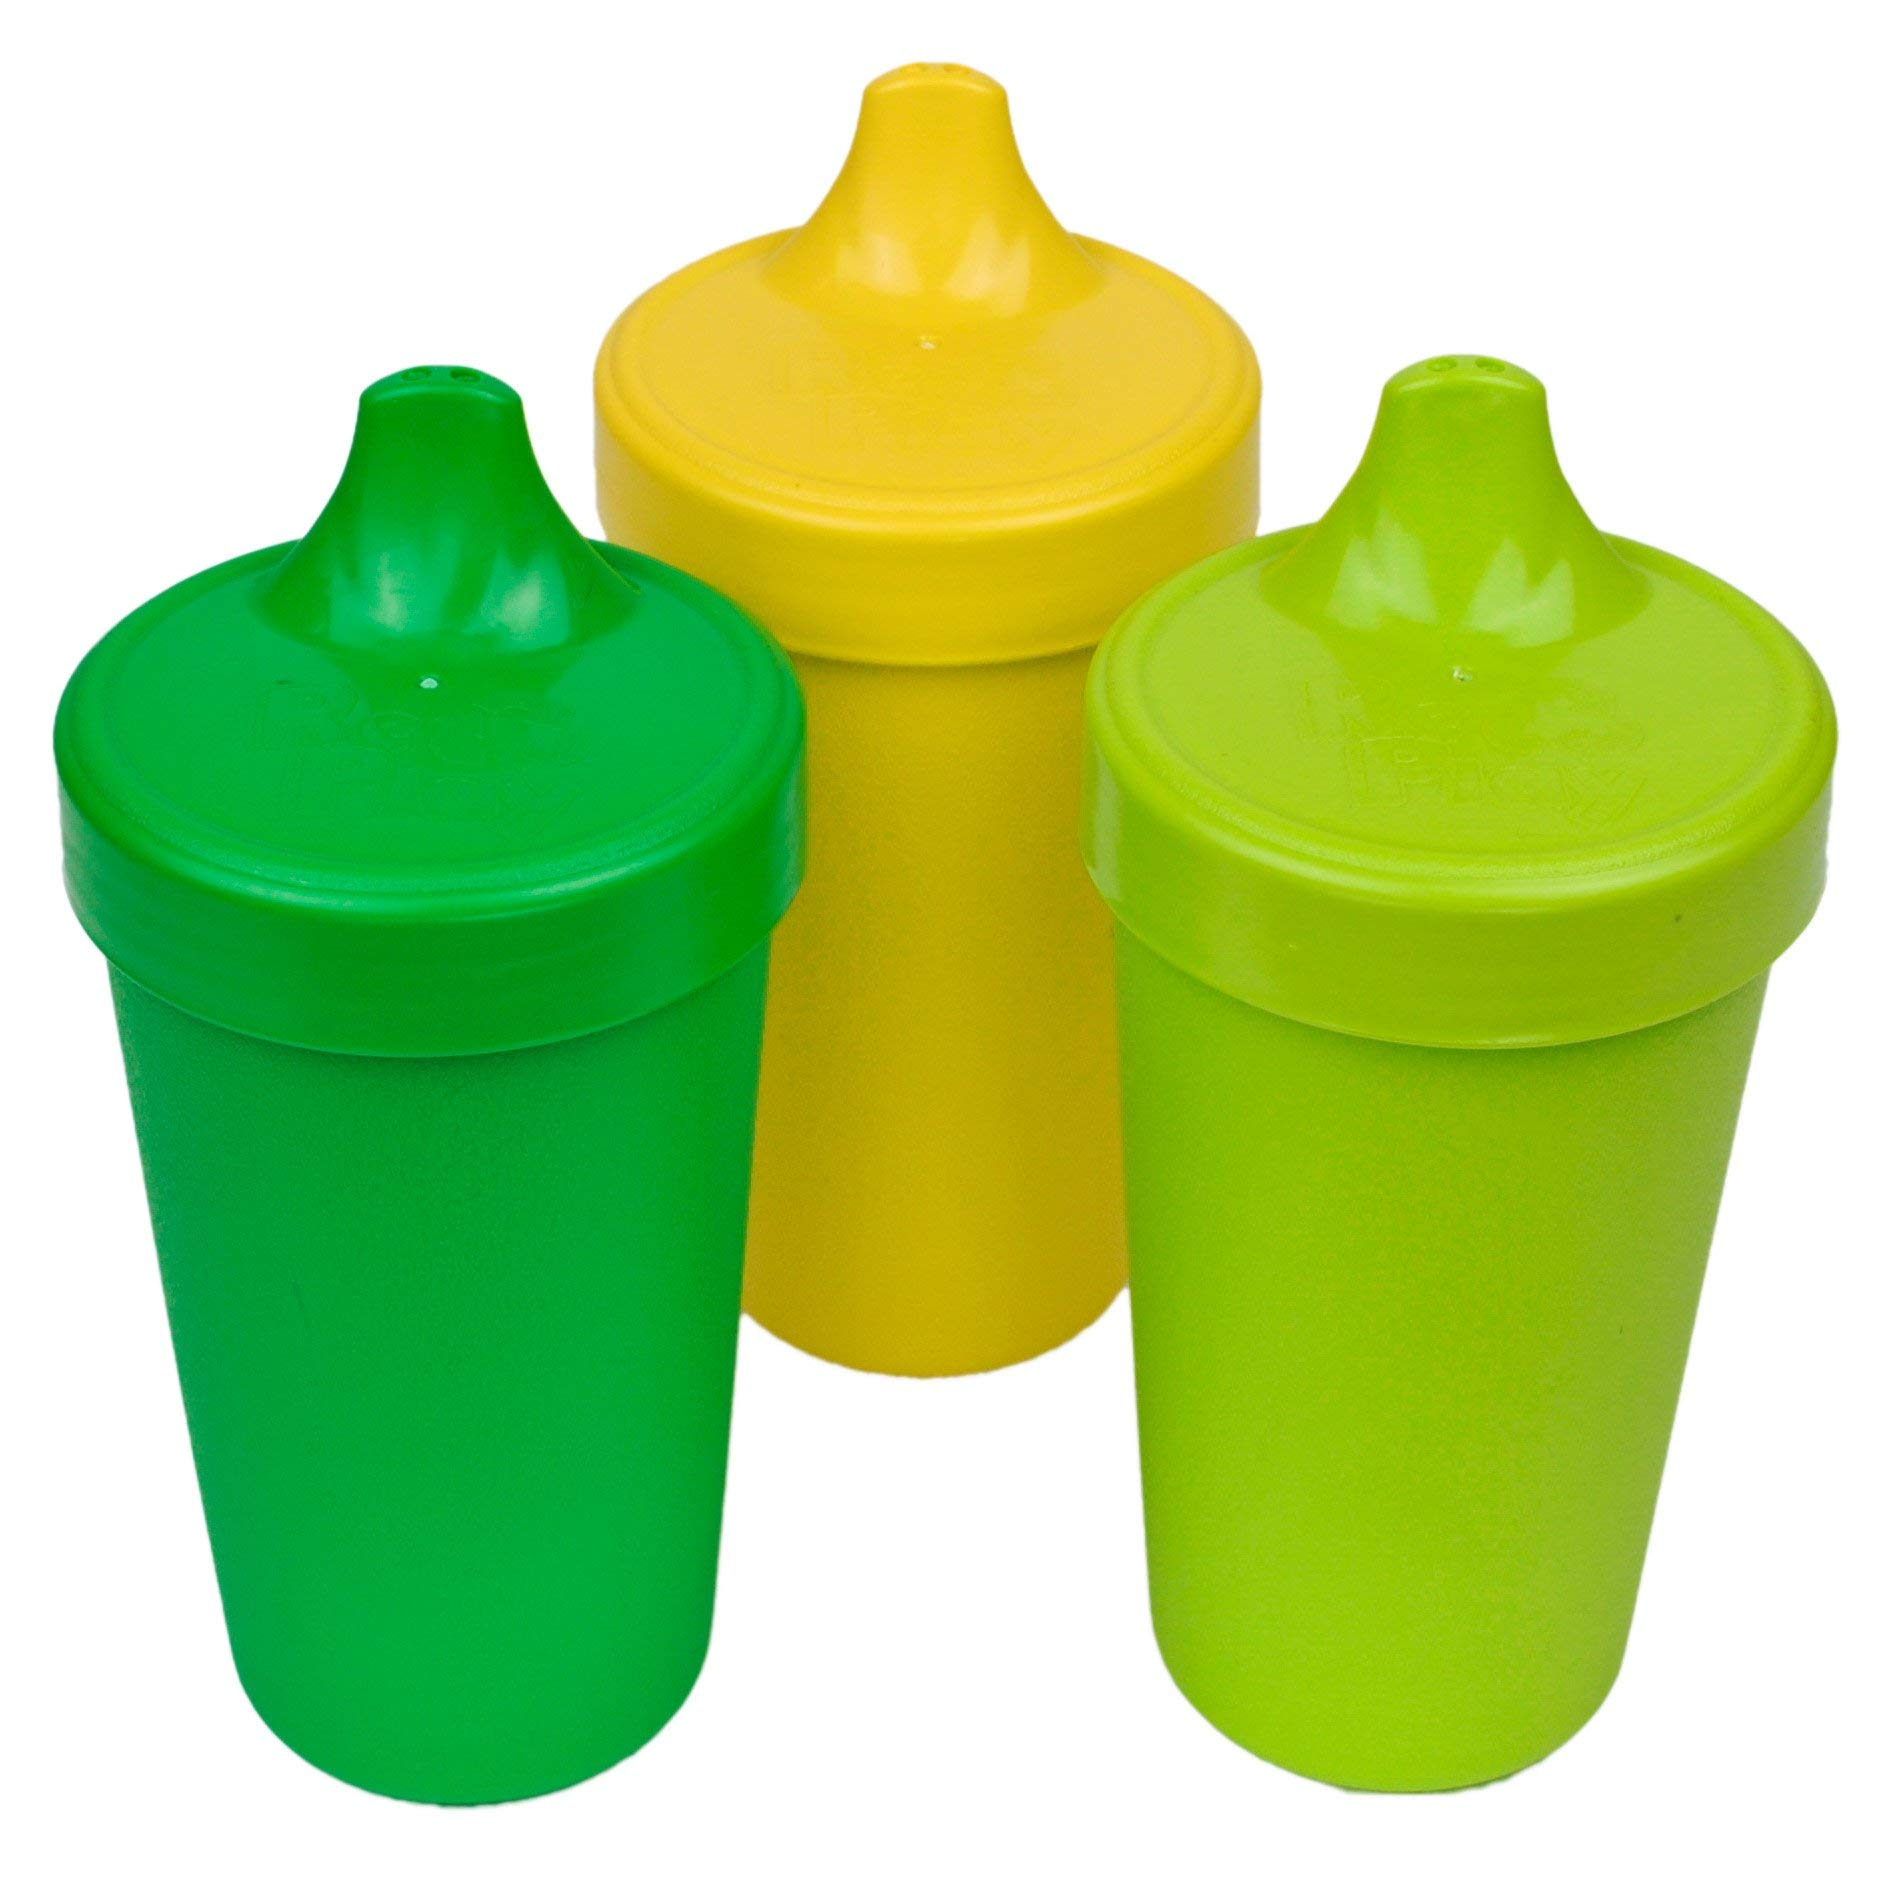 Re-Play Made in USA 3pk No Spill Cups for Baby, Toddler, and Child Feeding in Kelly Green, Yellow and Lime | Made from Eco Friendly Heavyweight Recycled Milk Jugs - Virtually Indestructible (Stem)